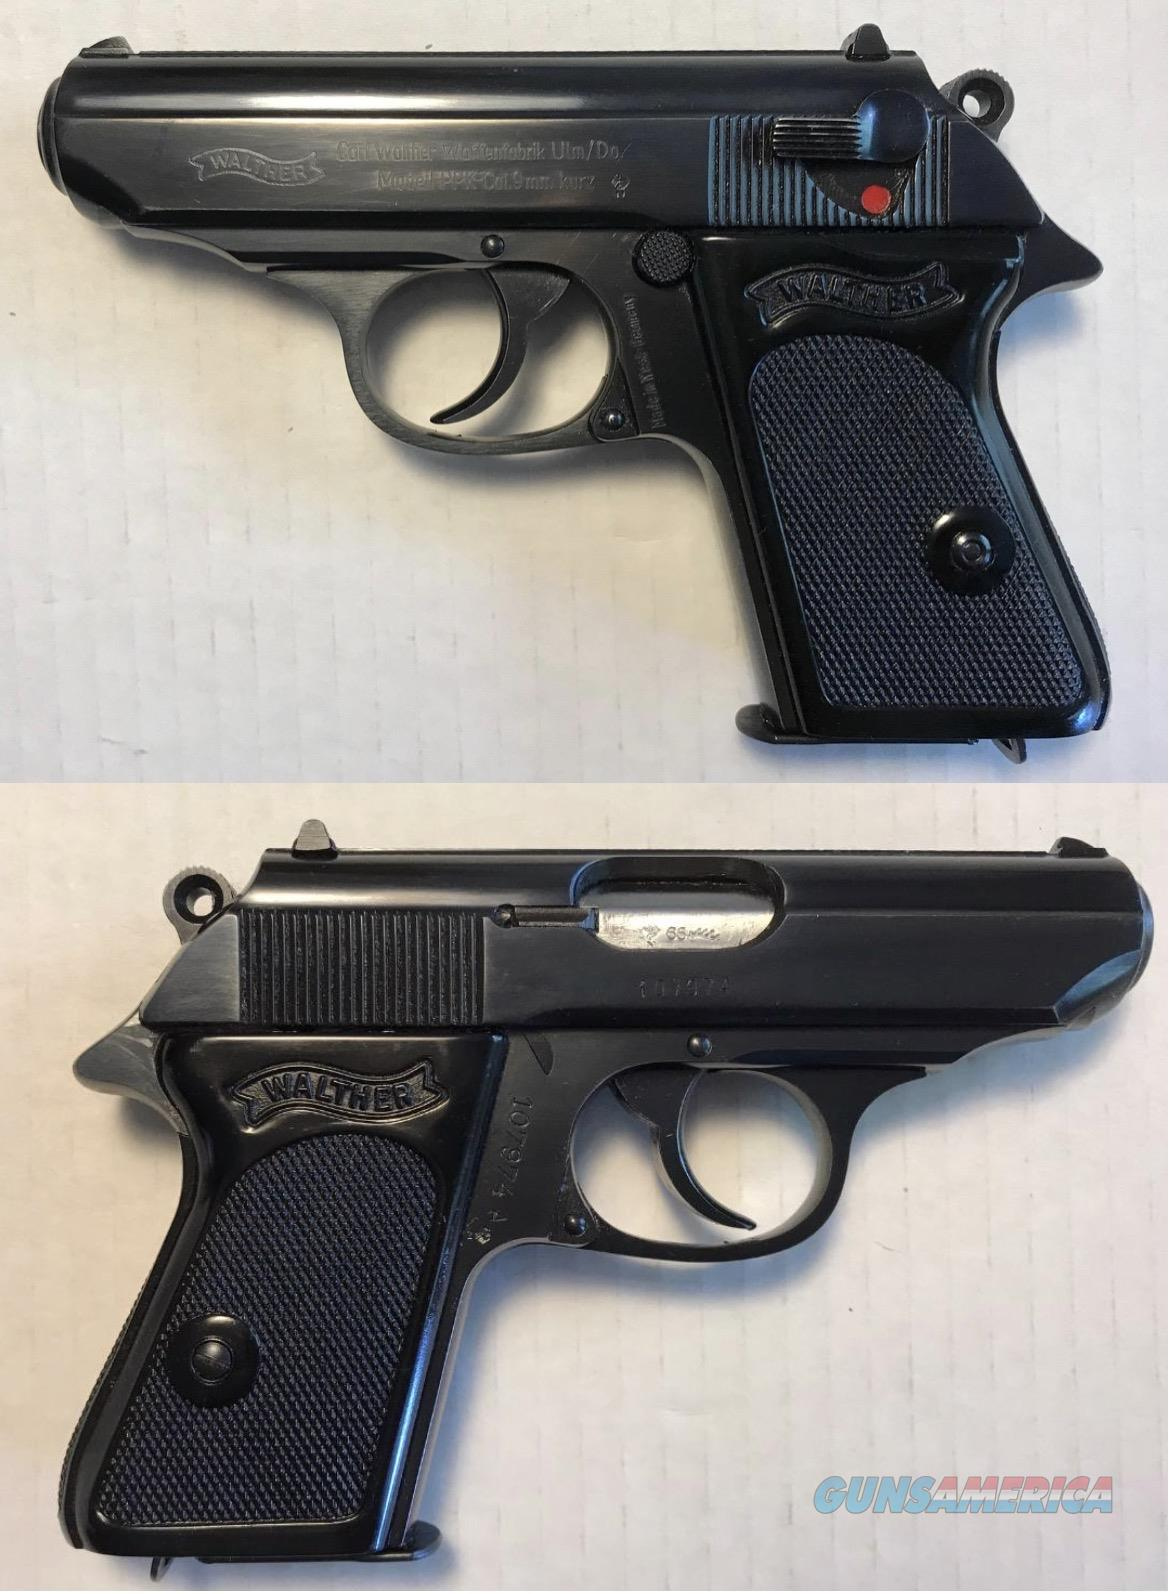 German Walther PPK 9mmK (.380) Curio & Relic Mfg. 1966  Guns > Pistols > Walther Pistols > Post WWII > PPK Series